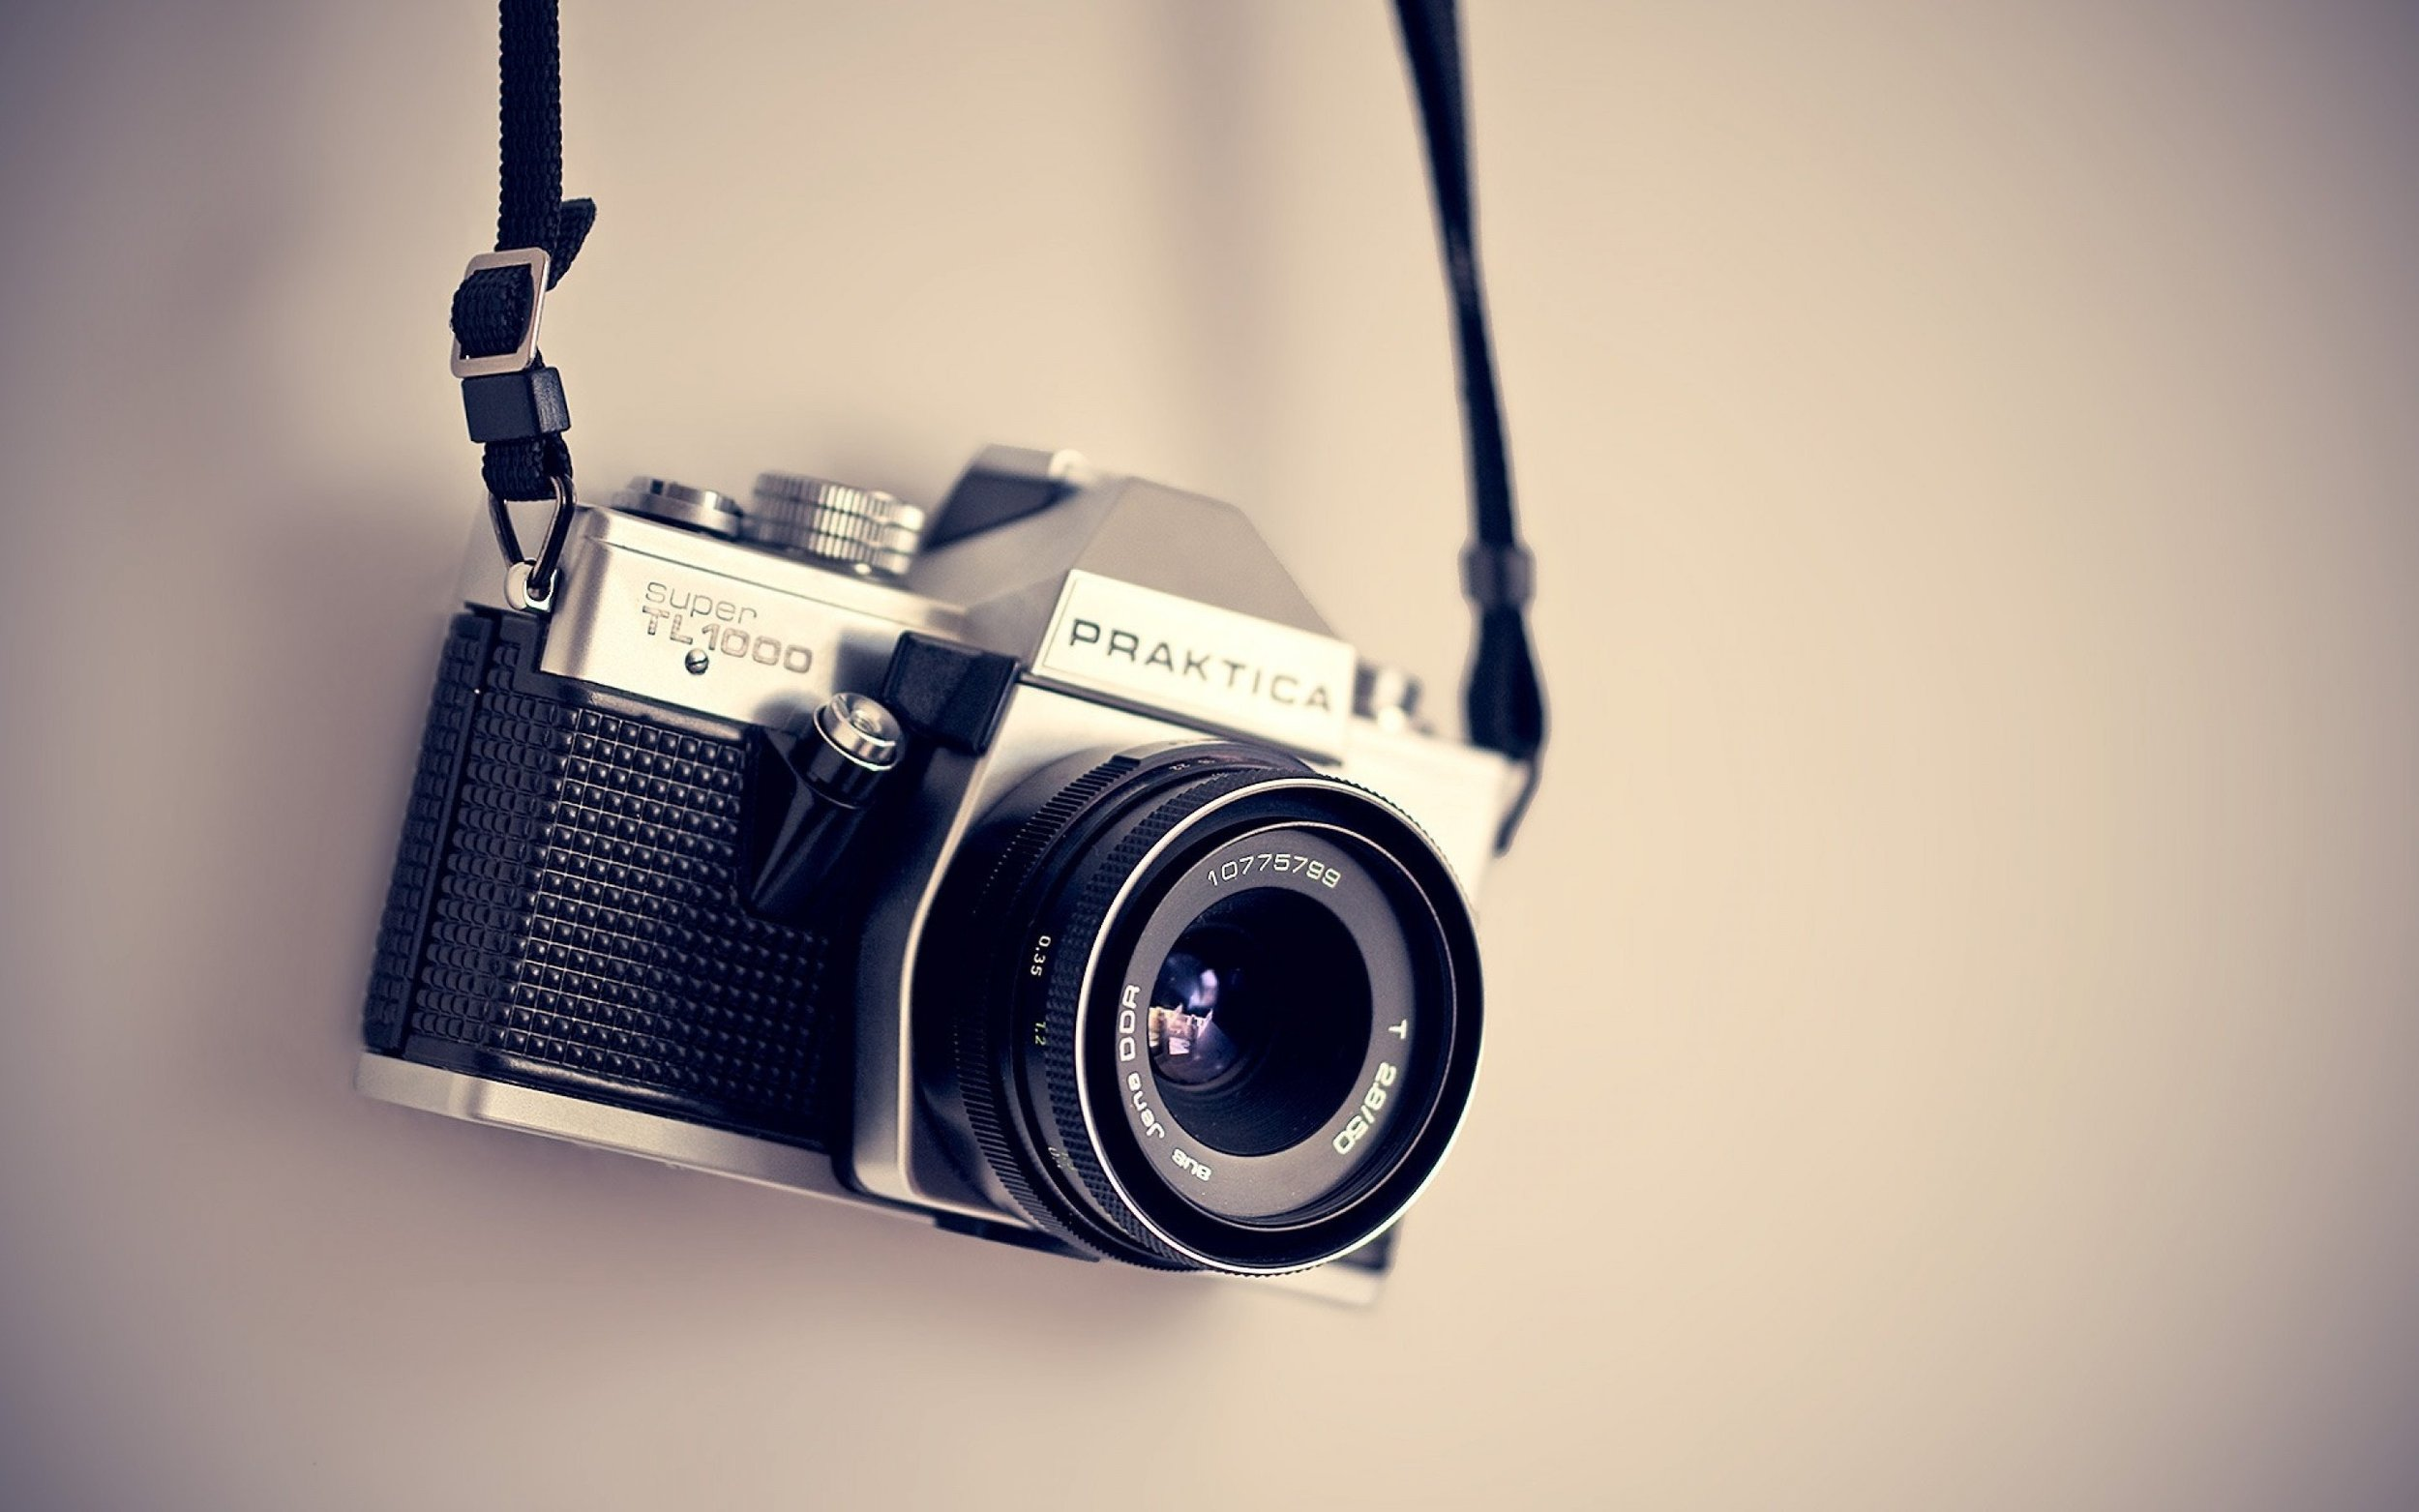 analogue-aperture-camera-226243.jpg